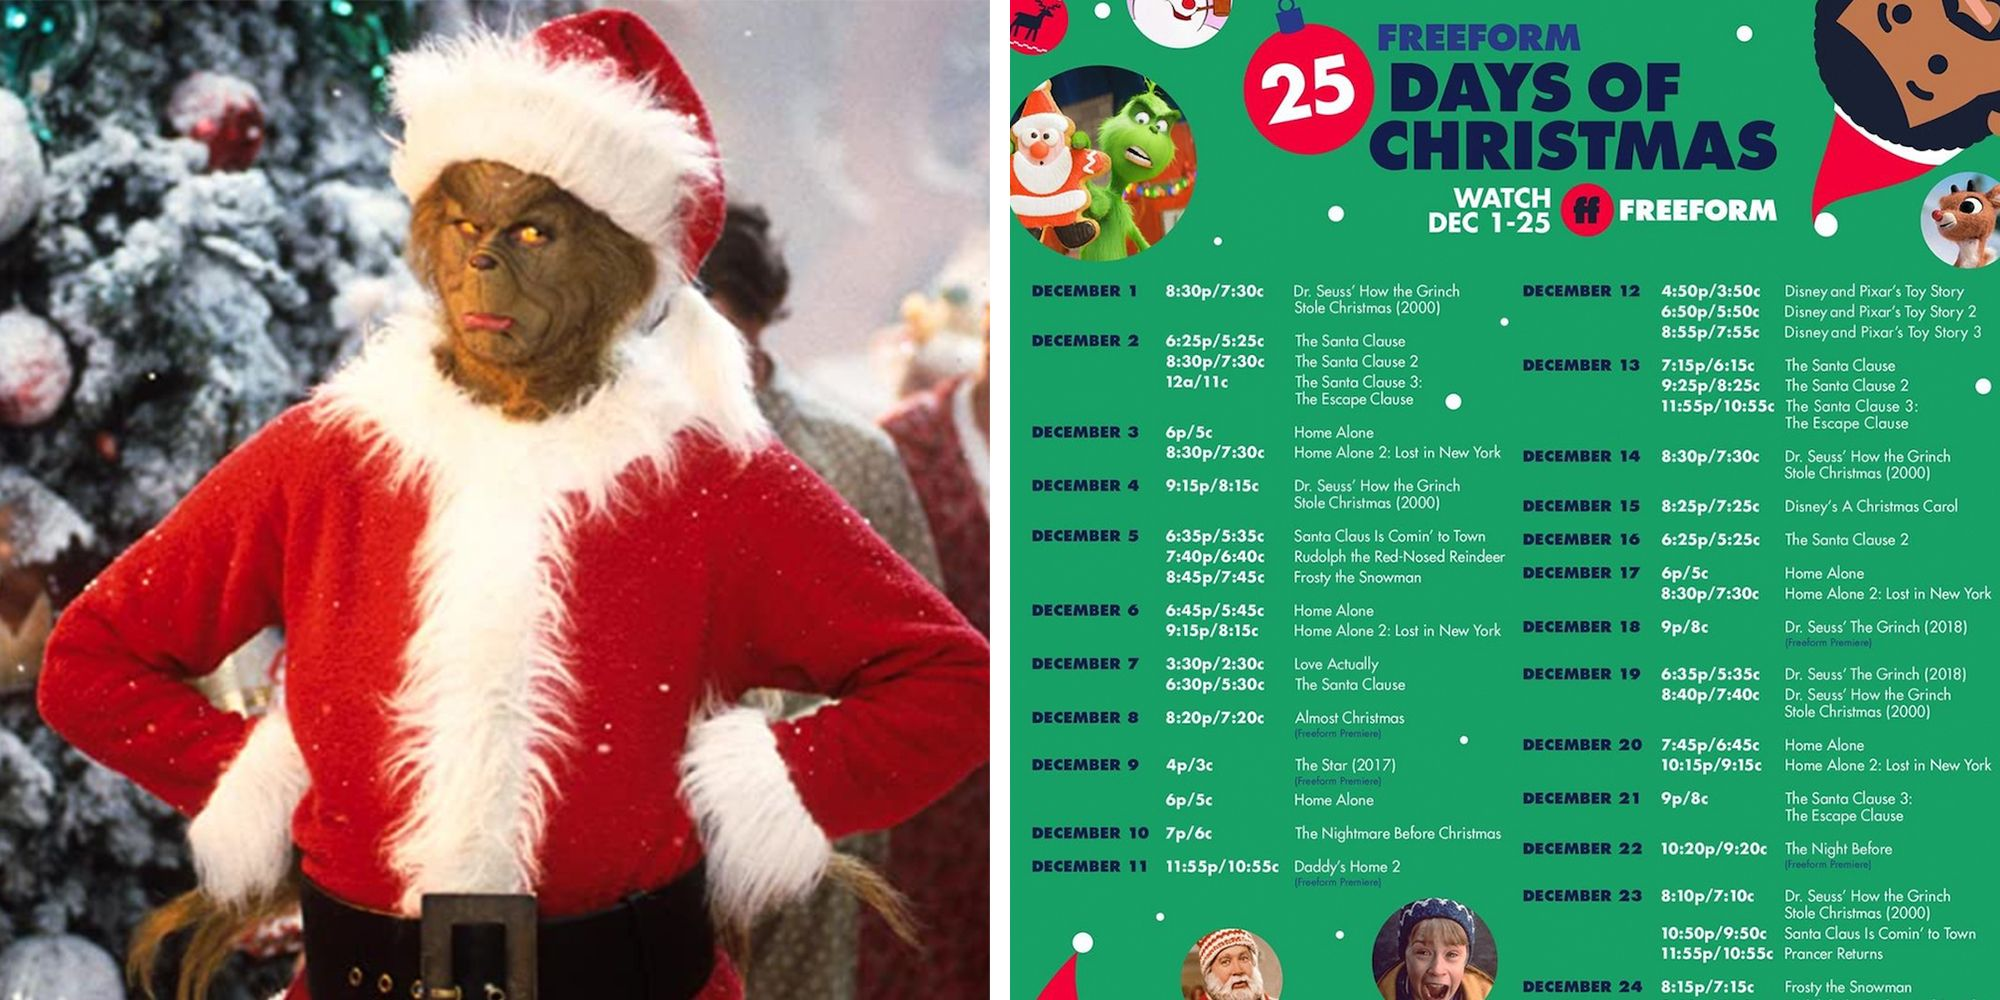 Freeform 25 Days To Christmas 2020 Freeform's '25 Days of Christmas' Schedule Will Keep You Glued to